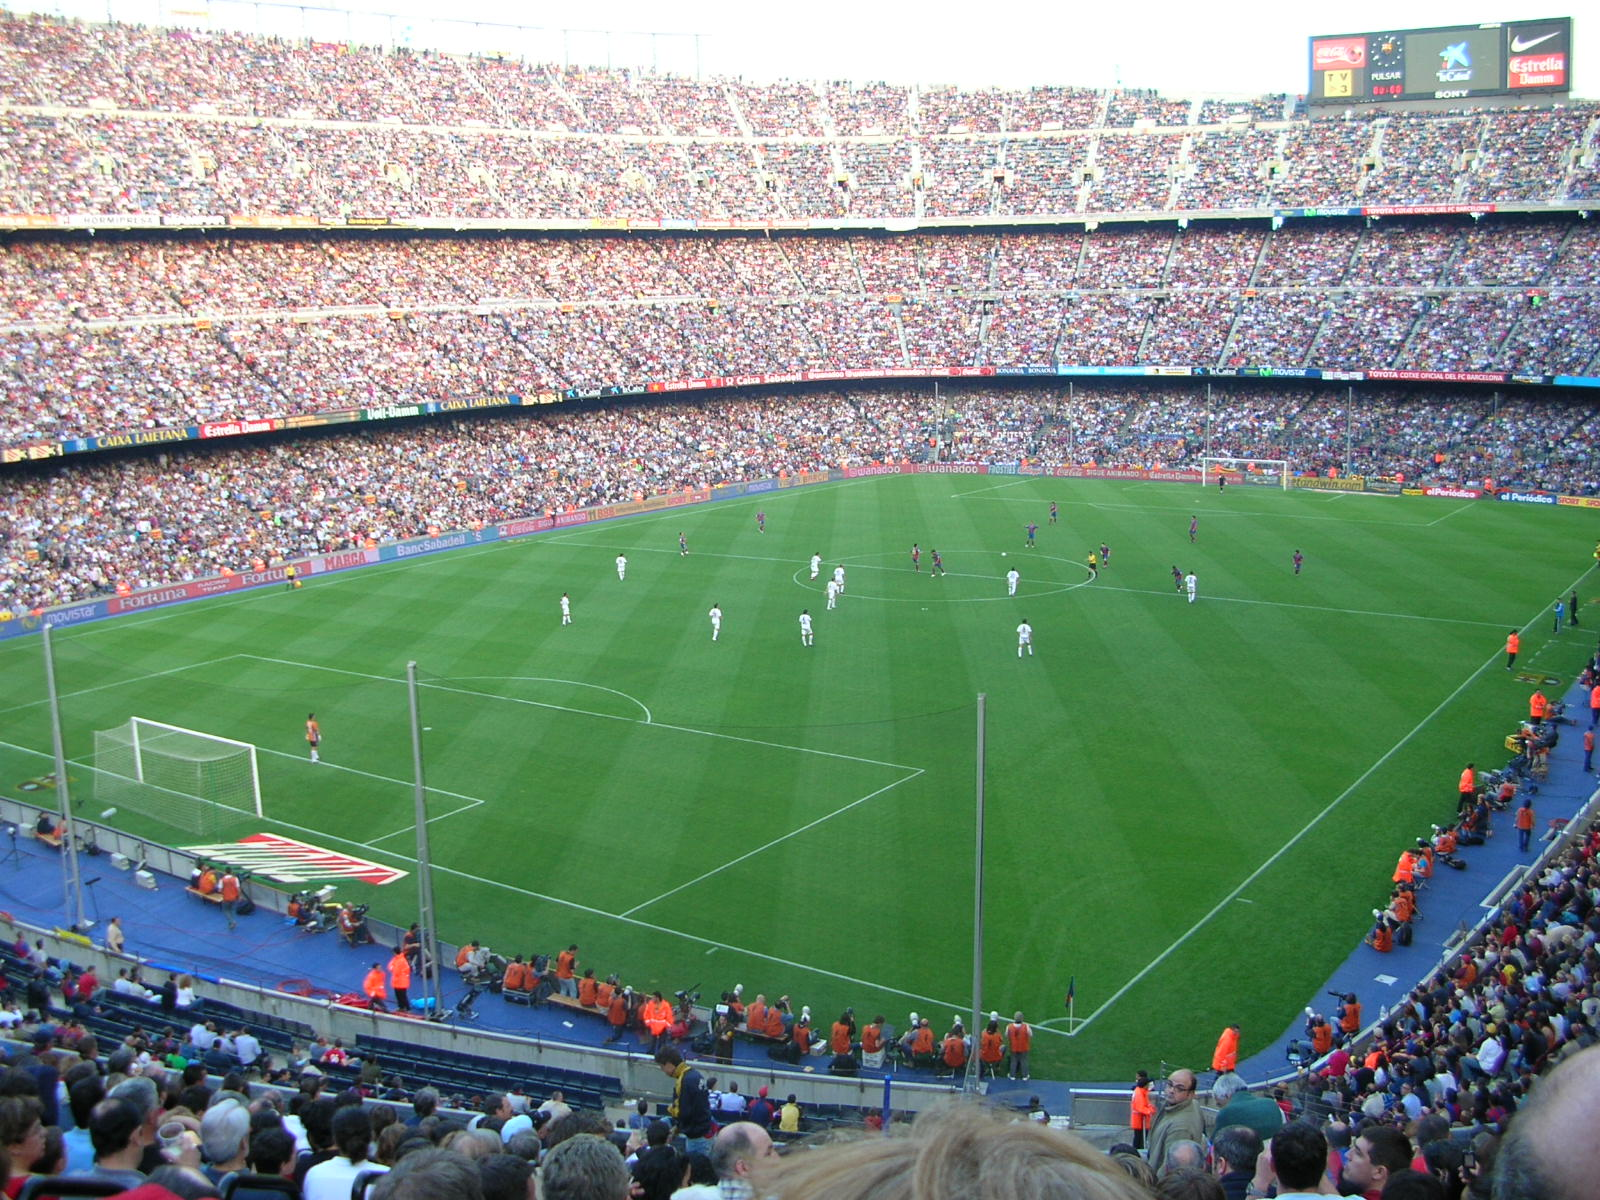 Theatre of Stadiums [licensed for non-commercial use only] / Camp Nou